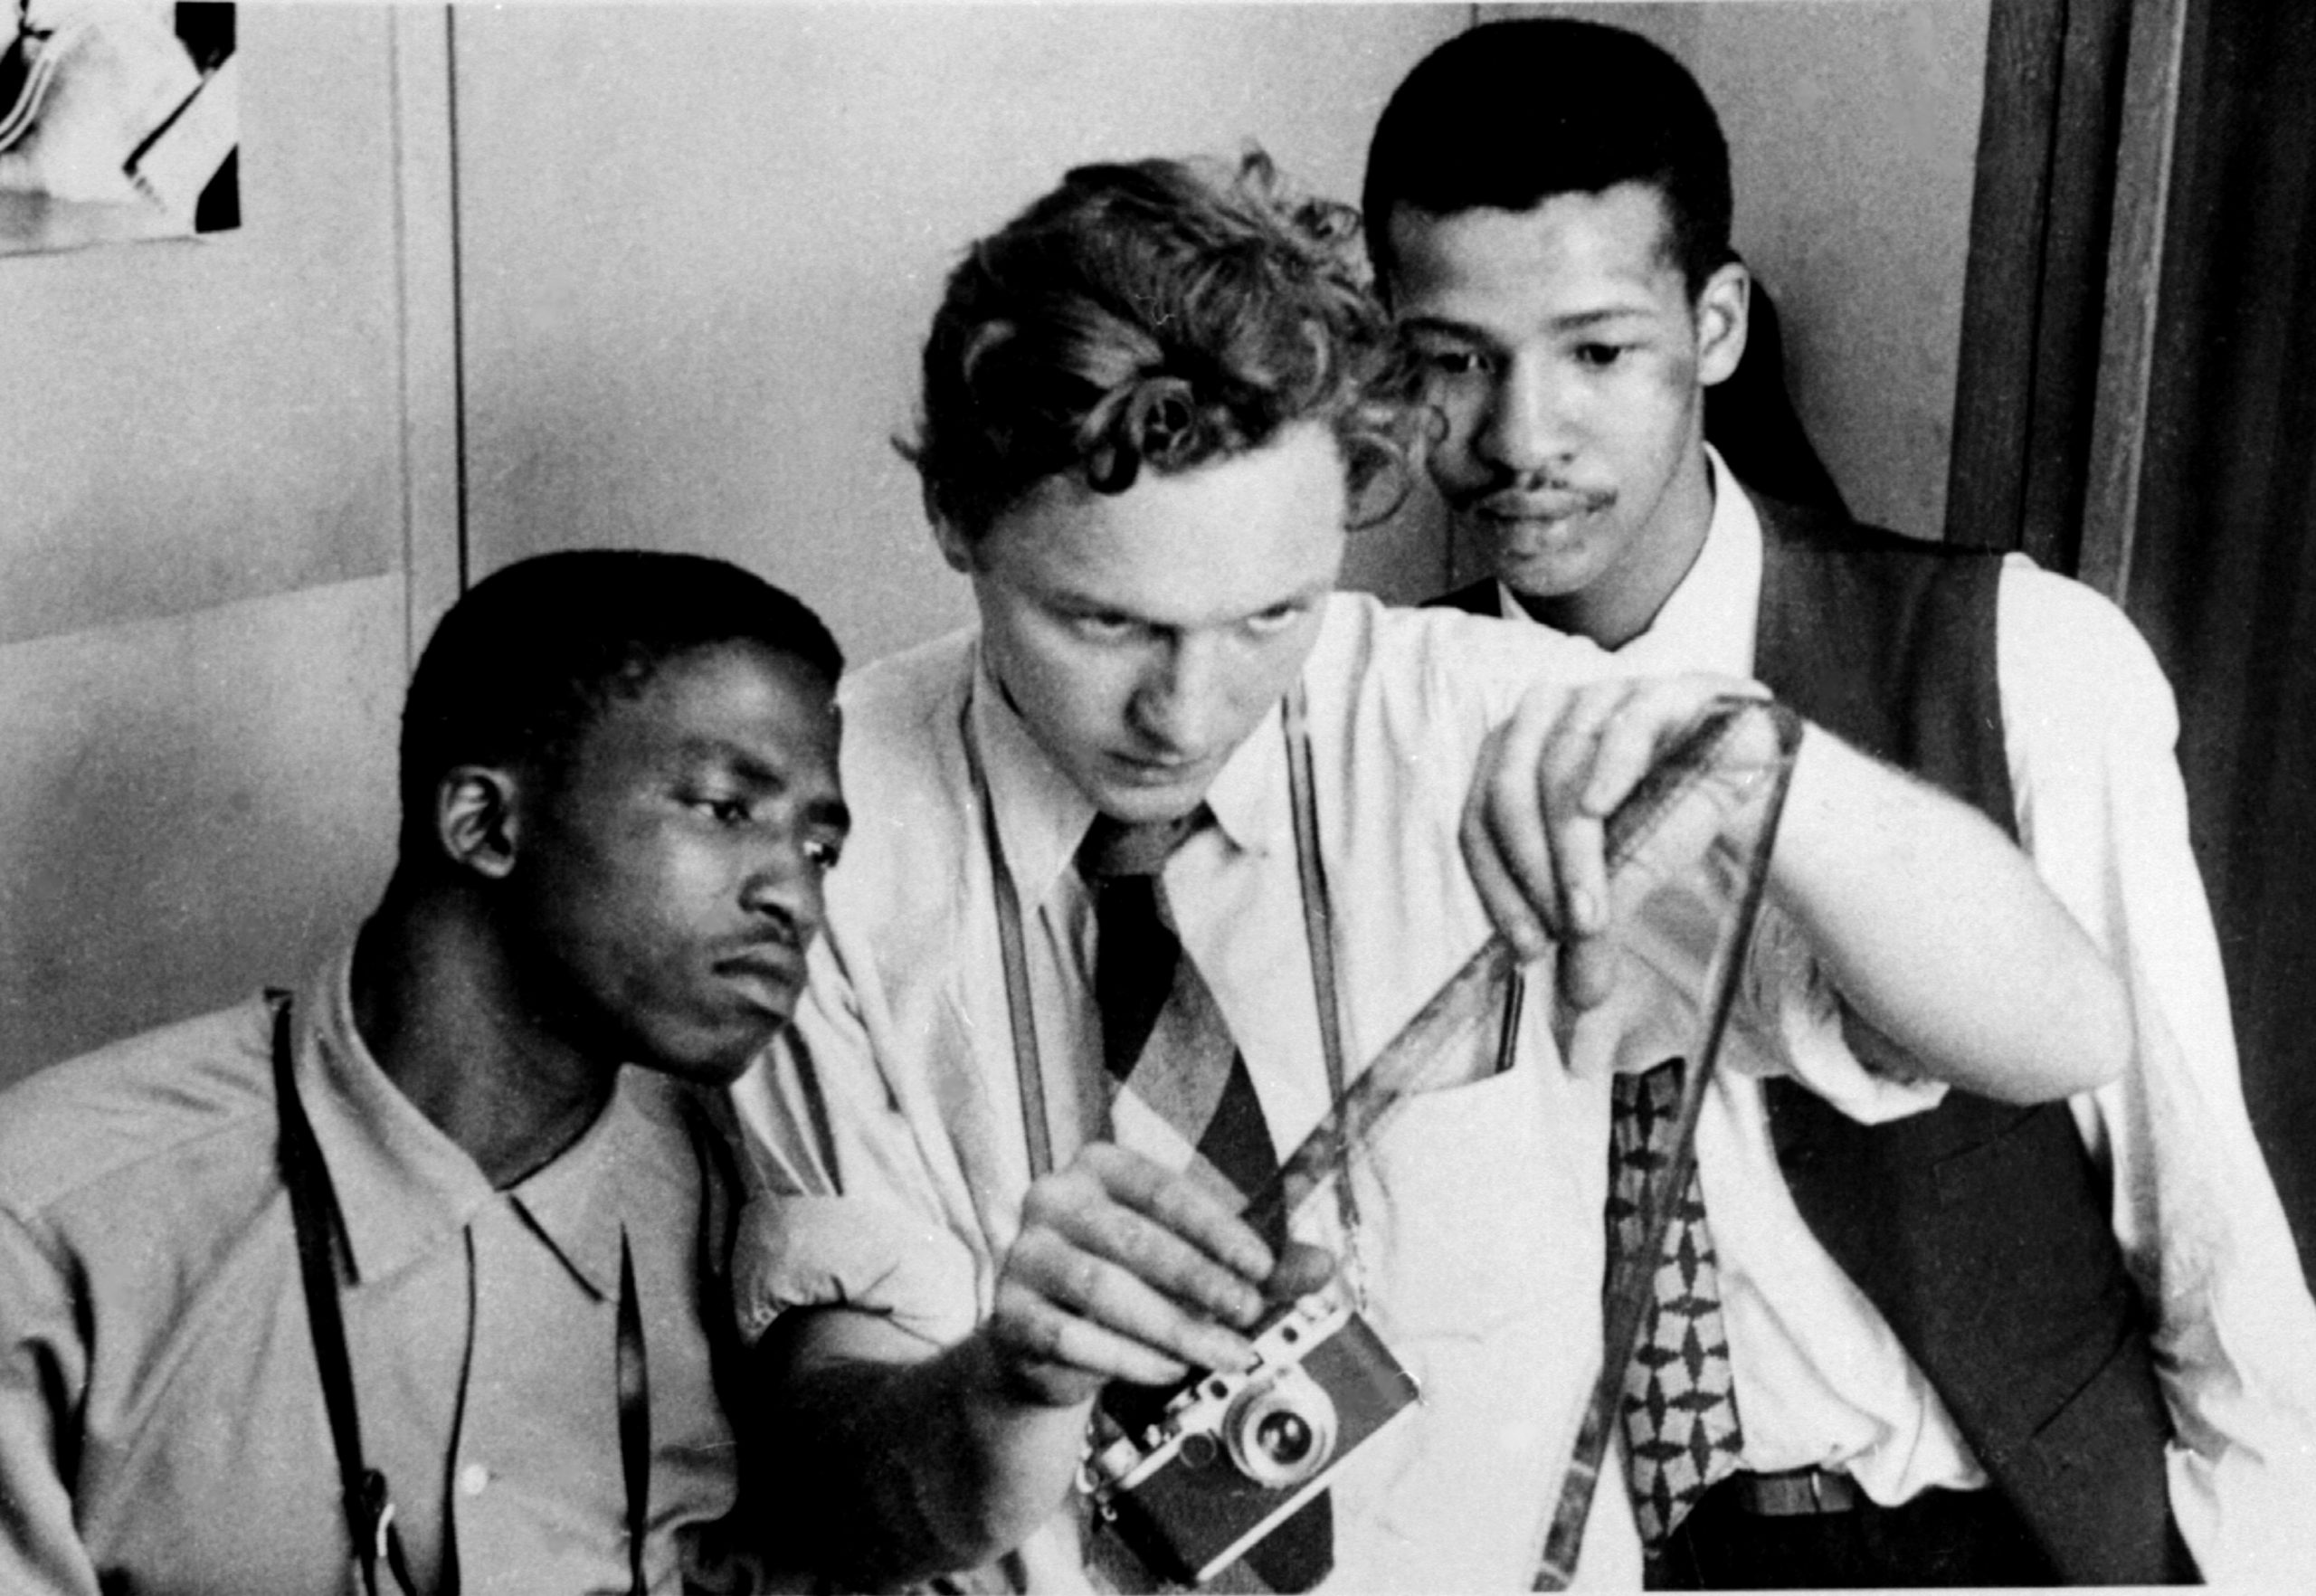 Circa 1956: From left, Peter Magubane, Jürgen Schadeberg and Bob Gosani at the Drum offices, where Schadeberg helped train young black photographers. (Photograph courtesy of the Jürgen Schadeberg estate)